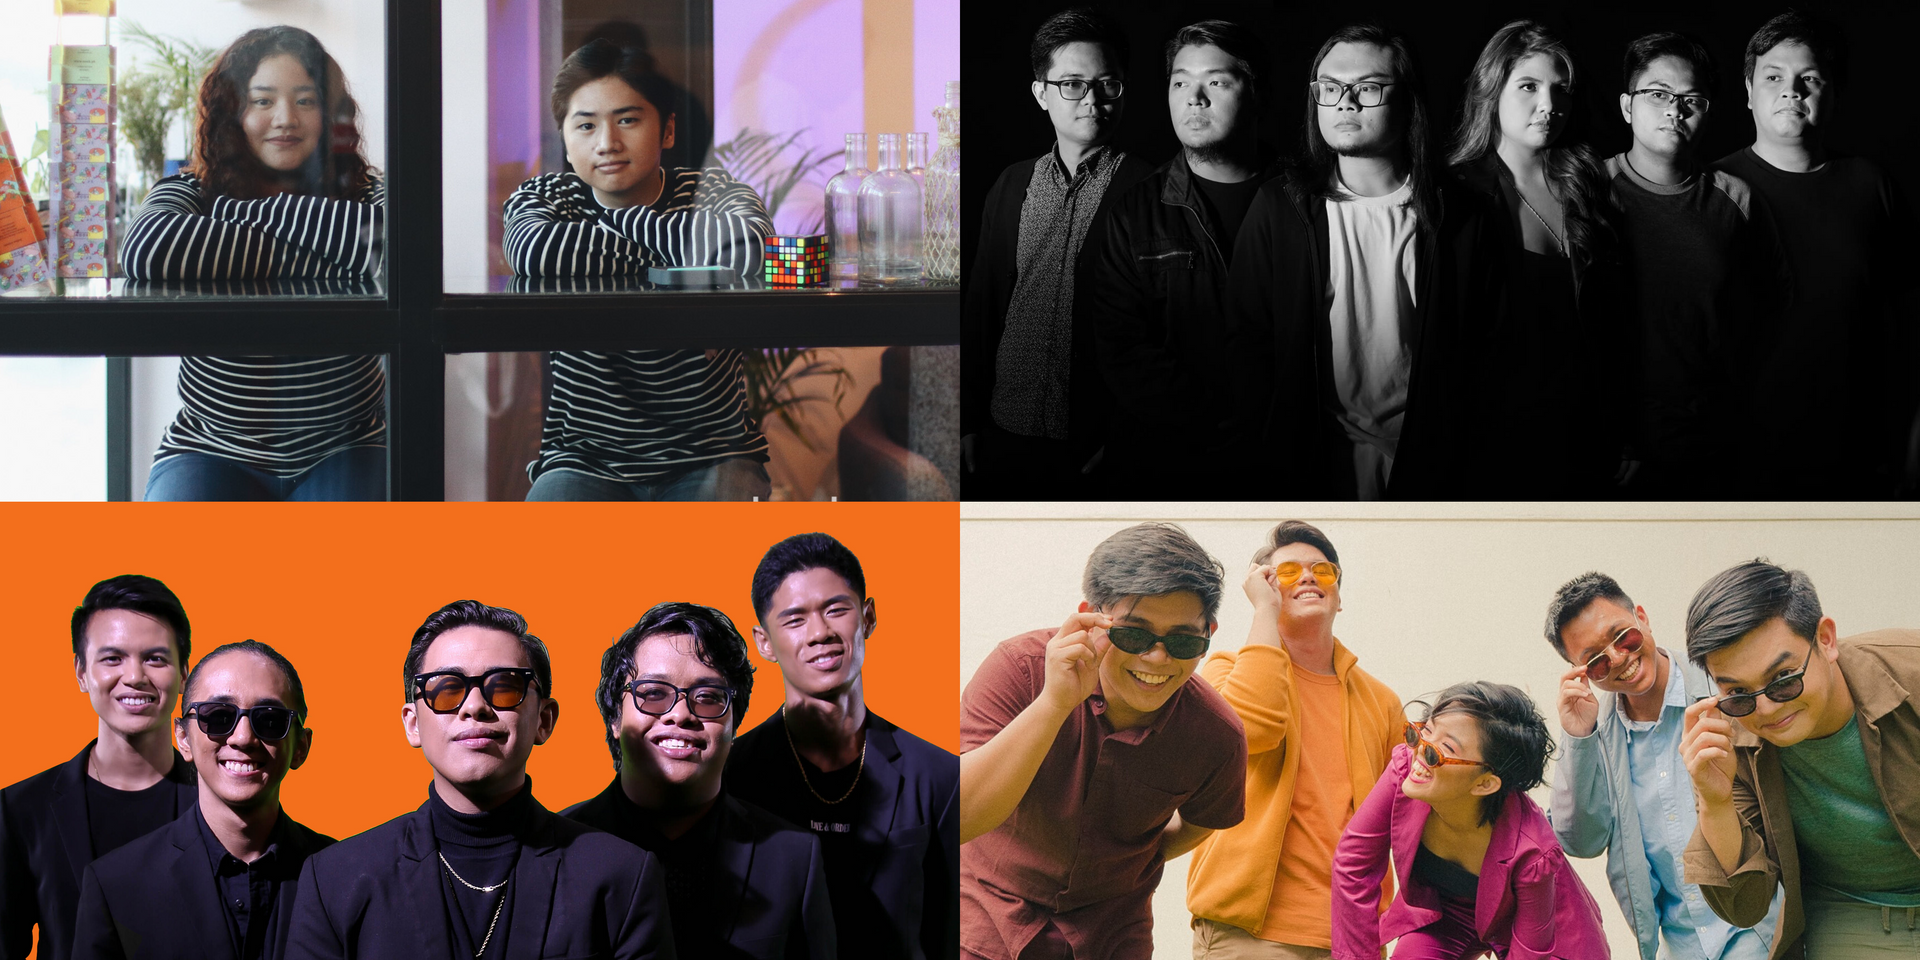 Autotelic, Ysanygo, Any Name's Okay, and more added to Tagaytay Art Beat 4 lineup